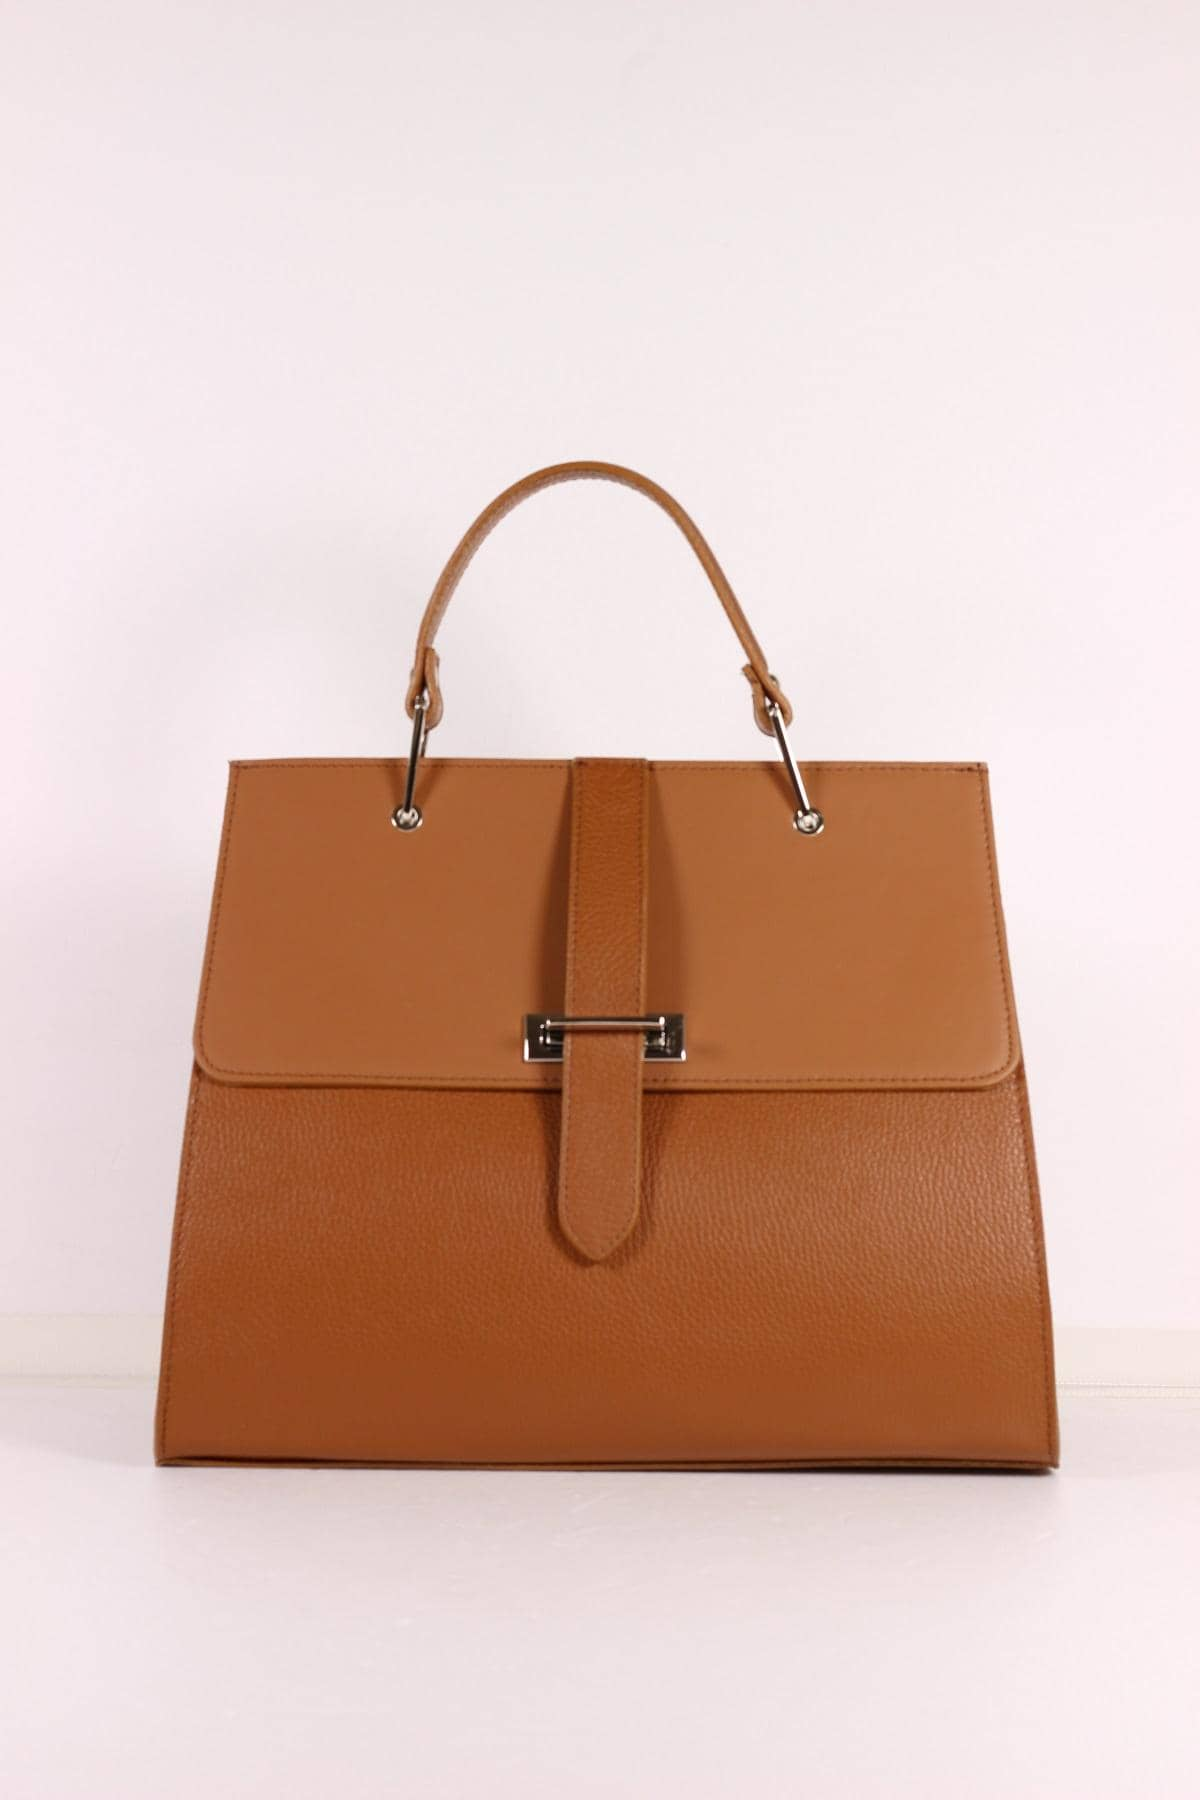 dd179c2c3454 Pictures of Leather Handbags Made In Italy